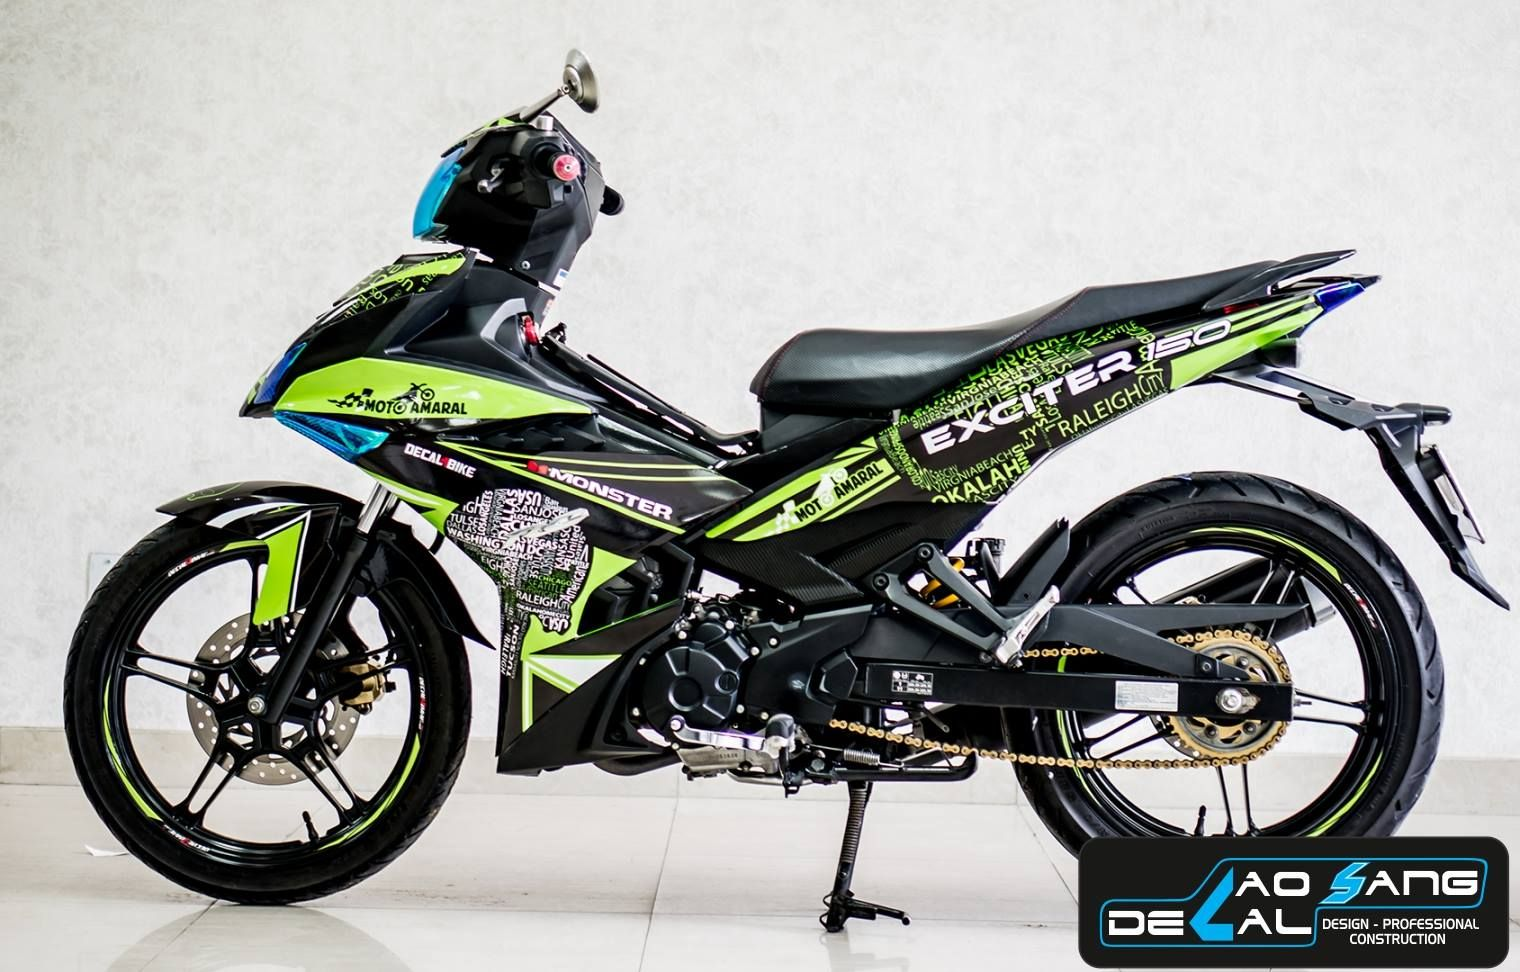 Pin by CAO SANG DECAL on tem exciter 150 | Motorcycle, Vehicles